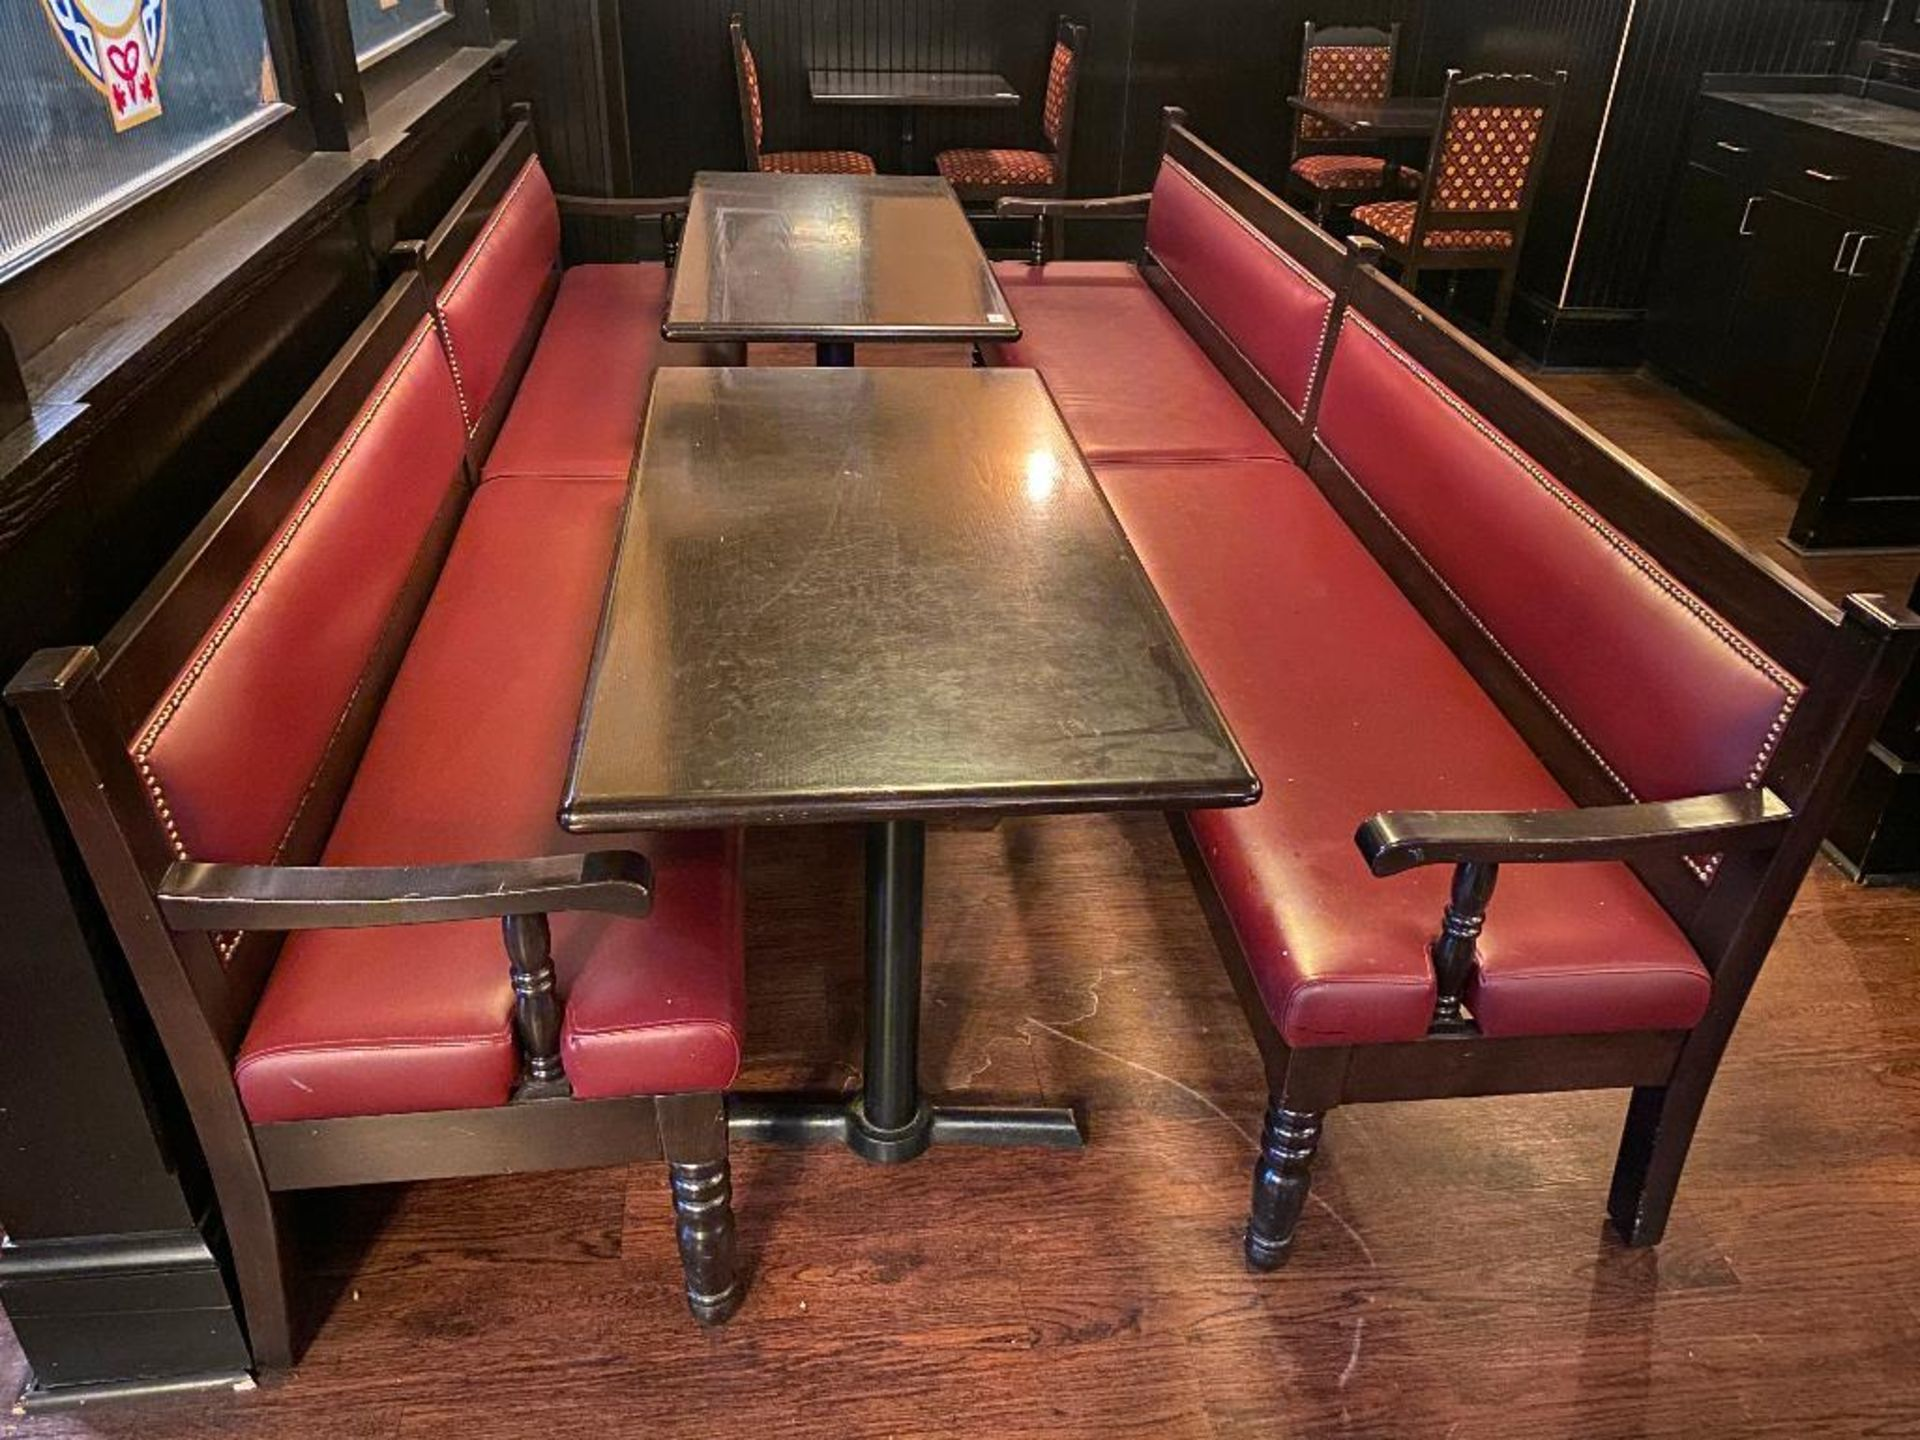 LOT OF (2) RECTANGULAR TABLE WITH (2) 10' BURGUNDY BENCHES - Image 2 of 4